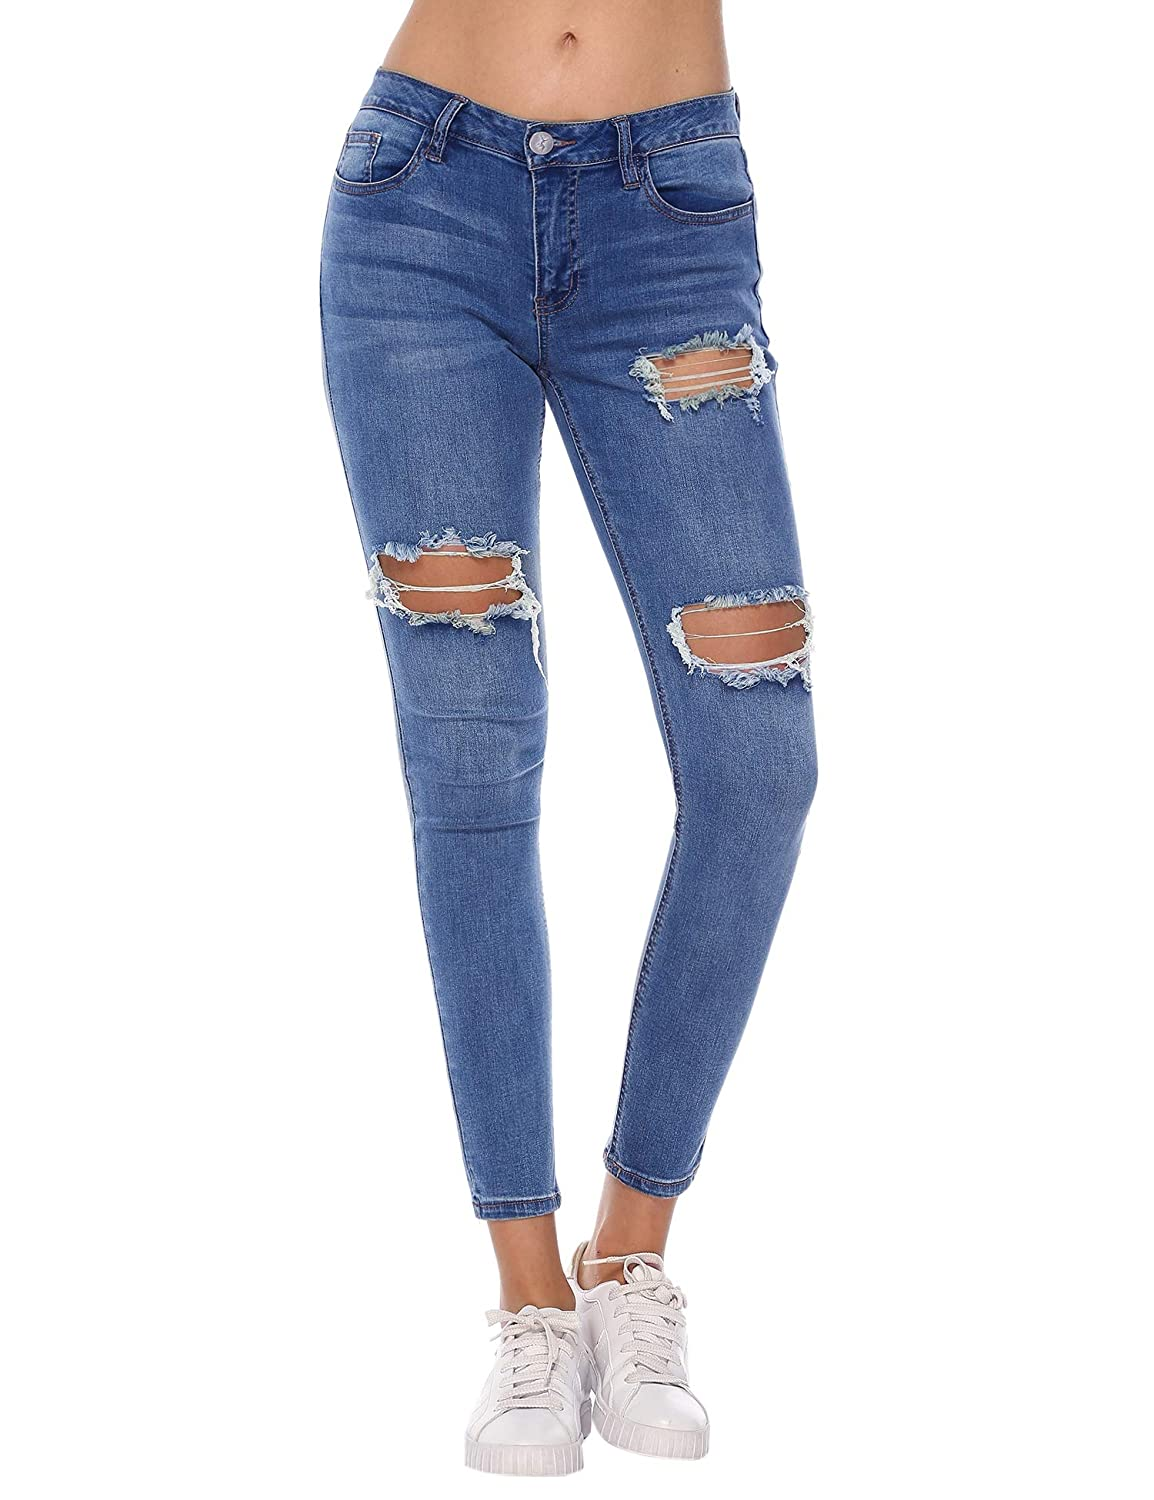 d240e8a33 Resfeber Women's Boyfriend Jeans Comfy Stretch Ripped Jeans Distressed Denim  Skinny Jeans at Amazon Women's Jeans store